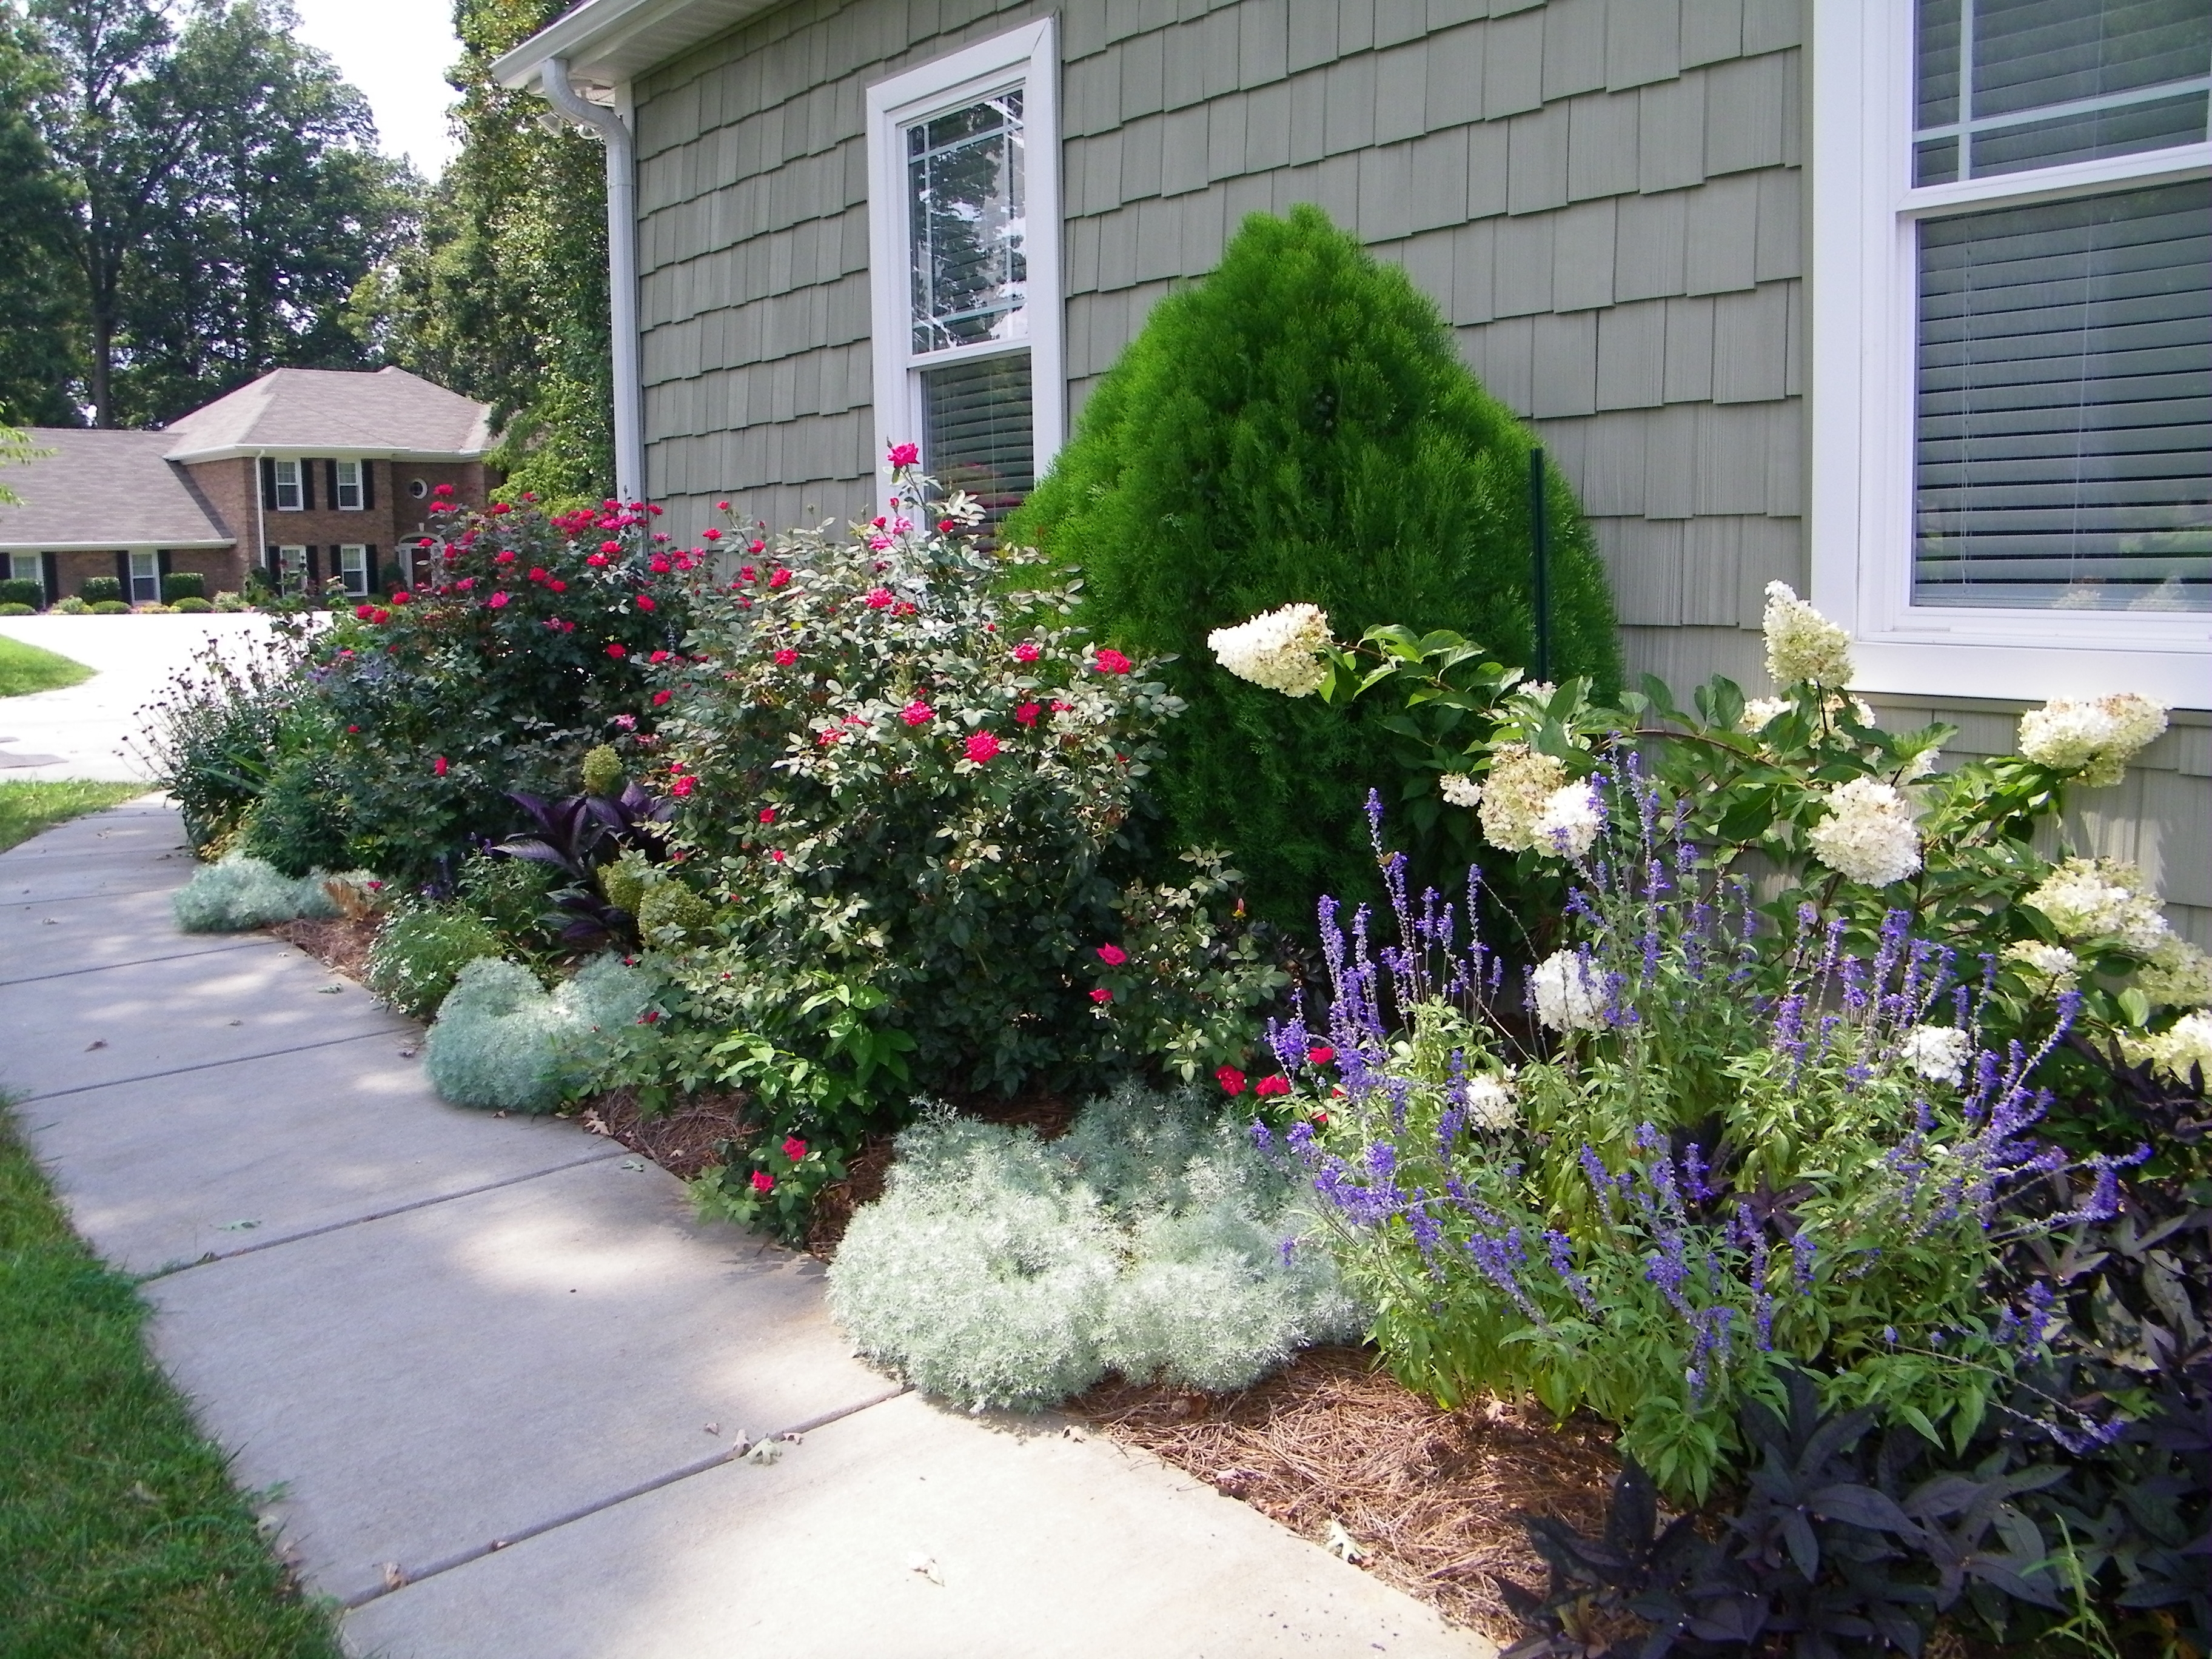 Image of: Hydrangea Landscape Roses Vanilla Strawberry Hydrangea With For Landscaping With Hydrangeas Landscaping With Hydrangeas Ideas